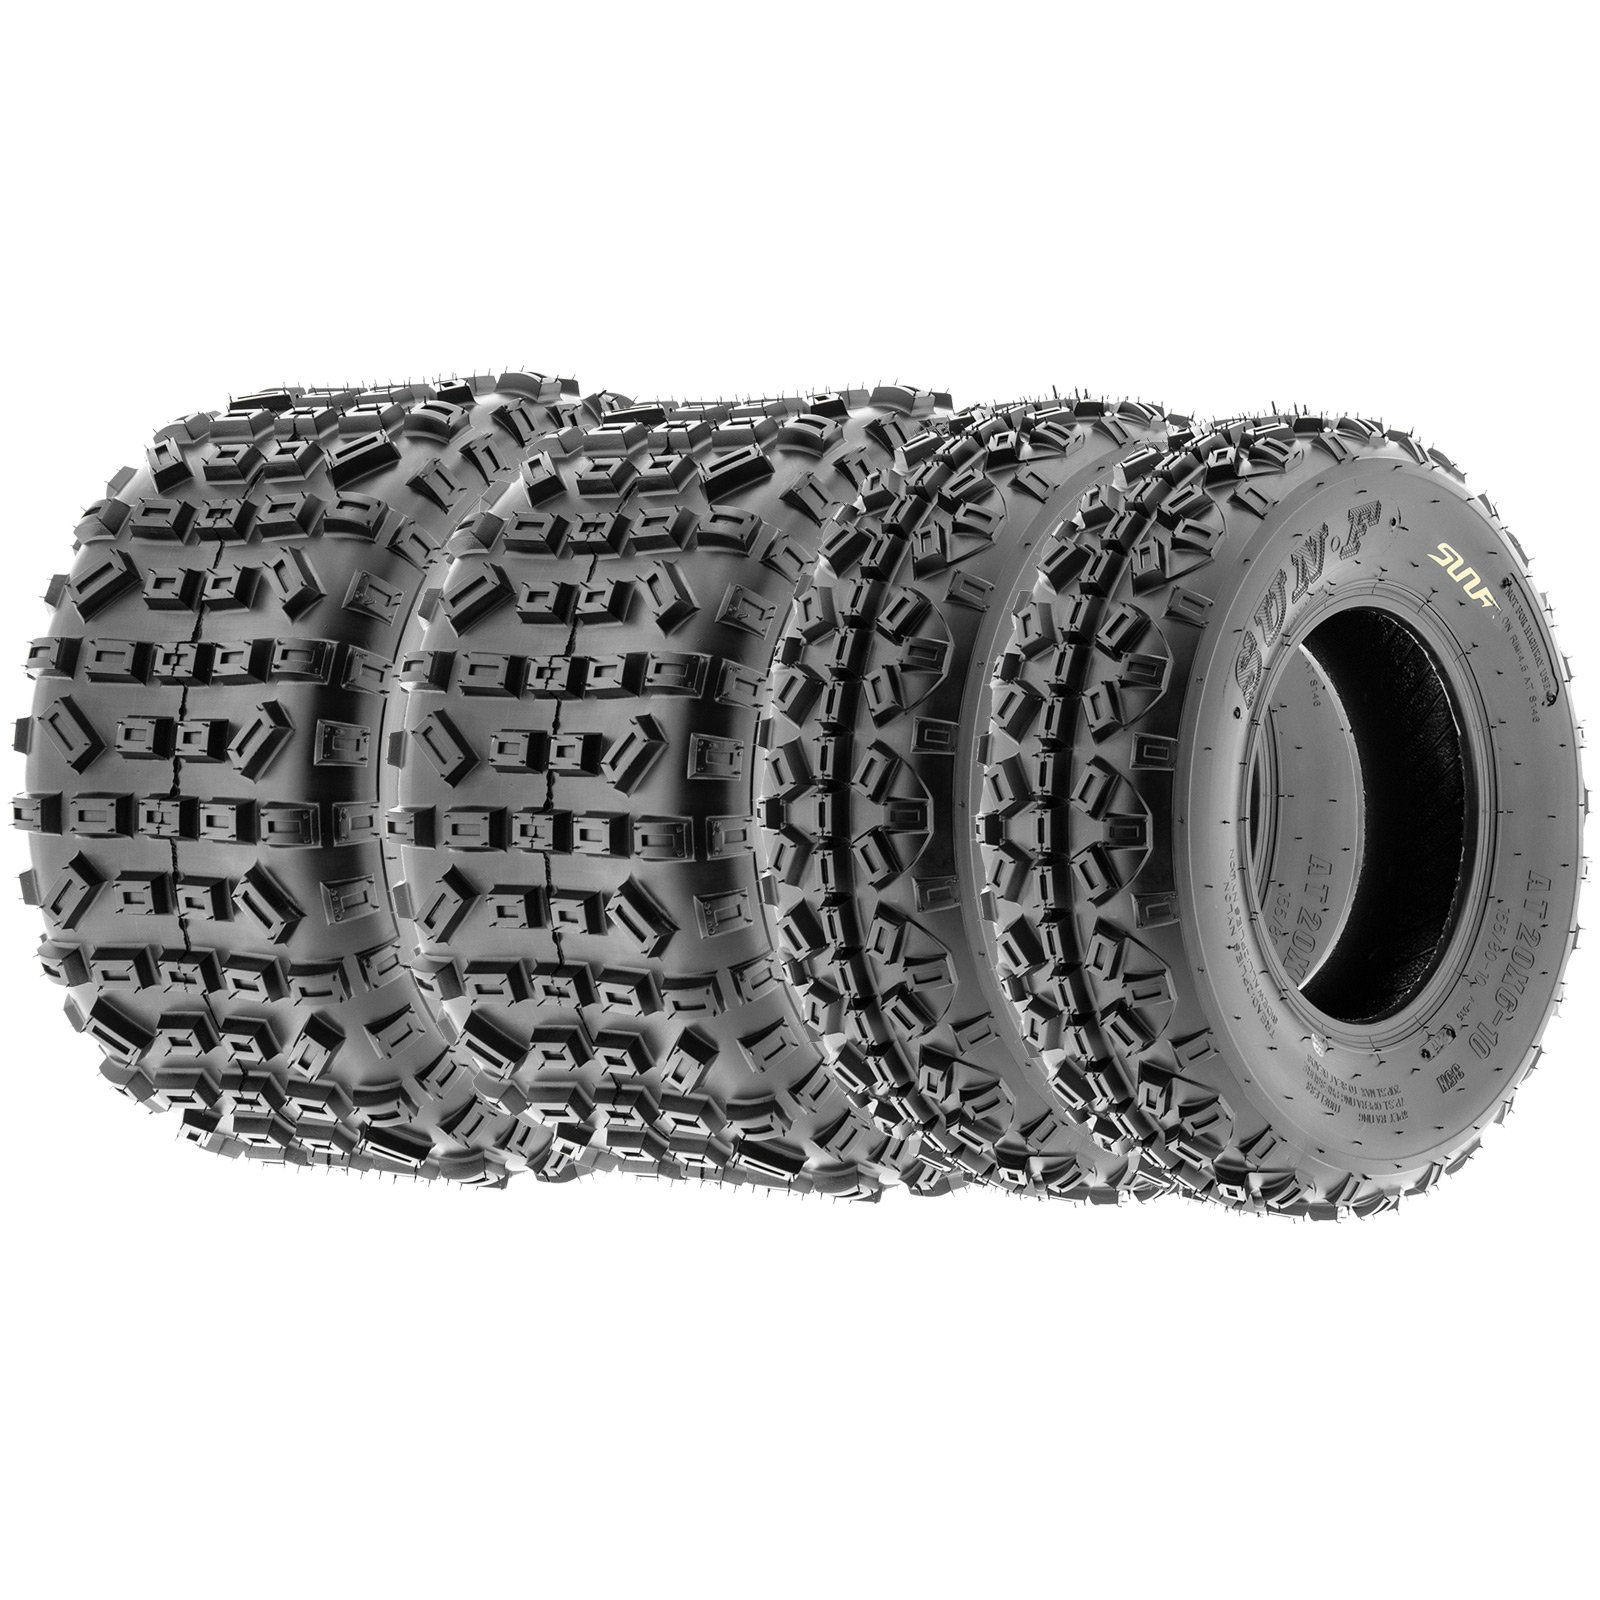 SunF Knobby XC MX ATV Tires 21x6-10 & 20x11-9 6 PR A035 (Full set of 4, Front & Rear) by SunF (Image #10)